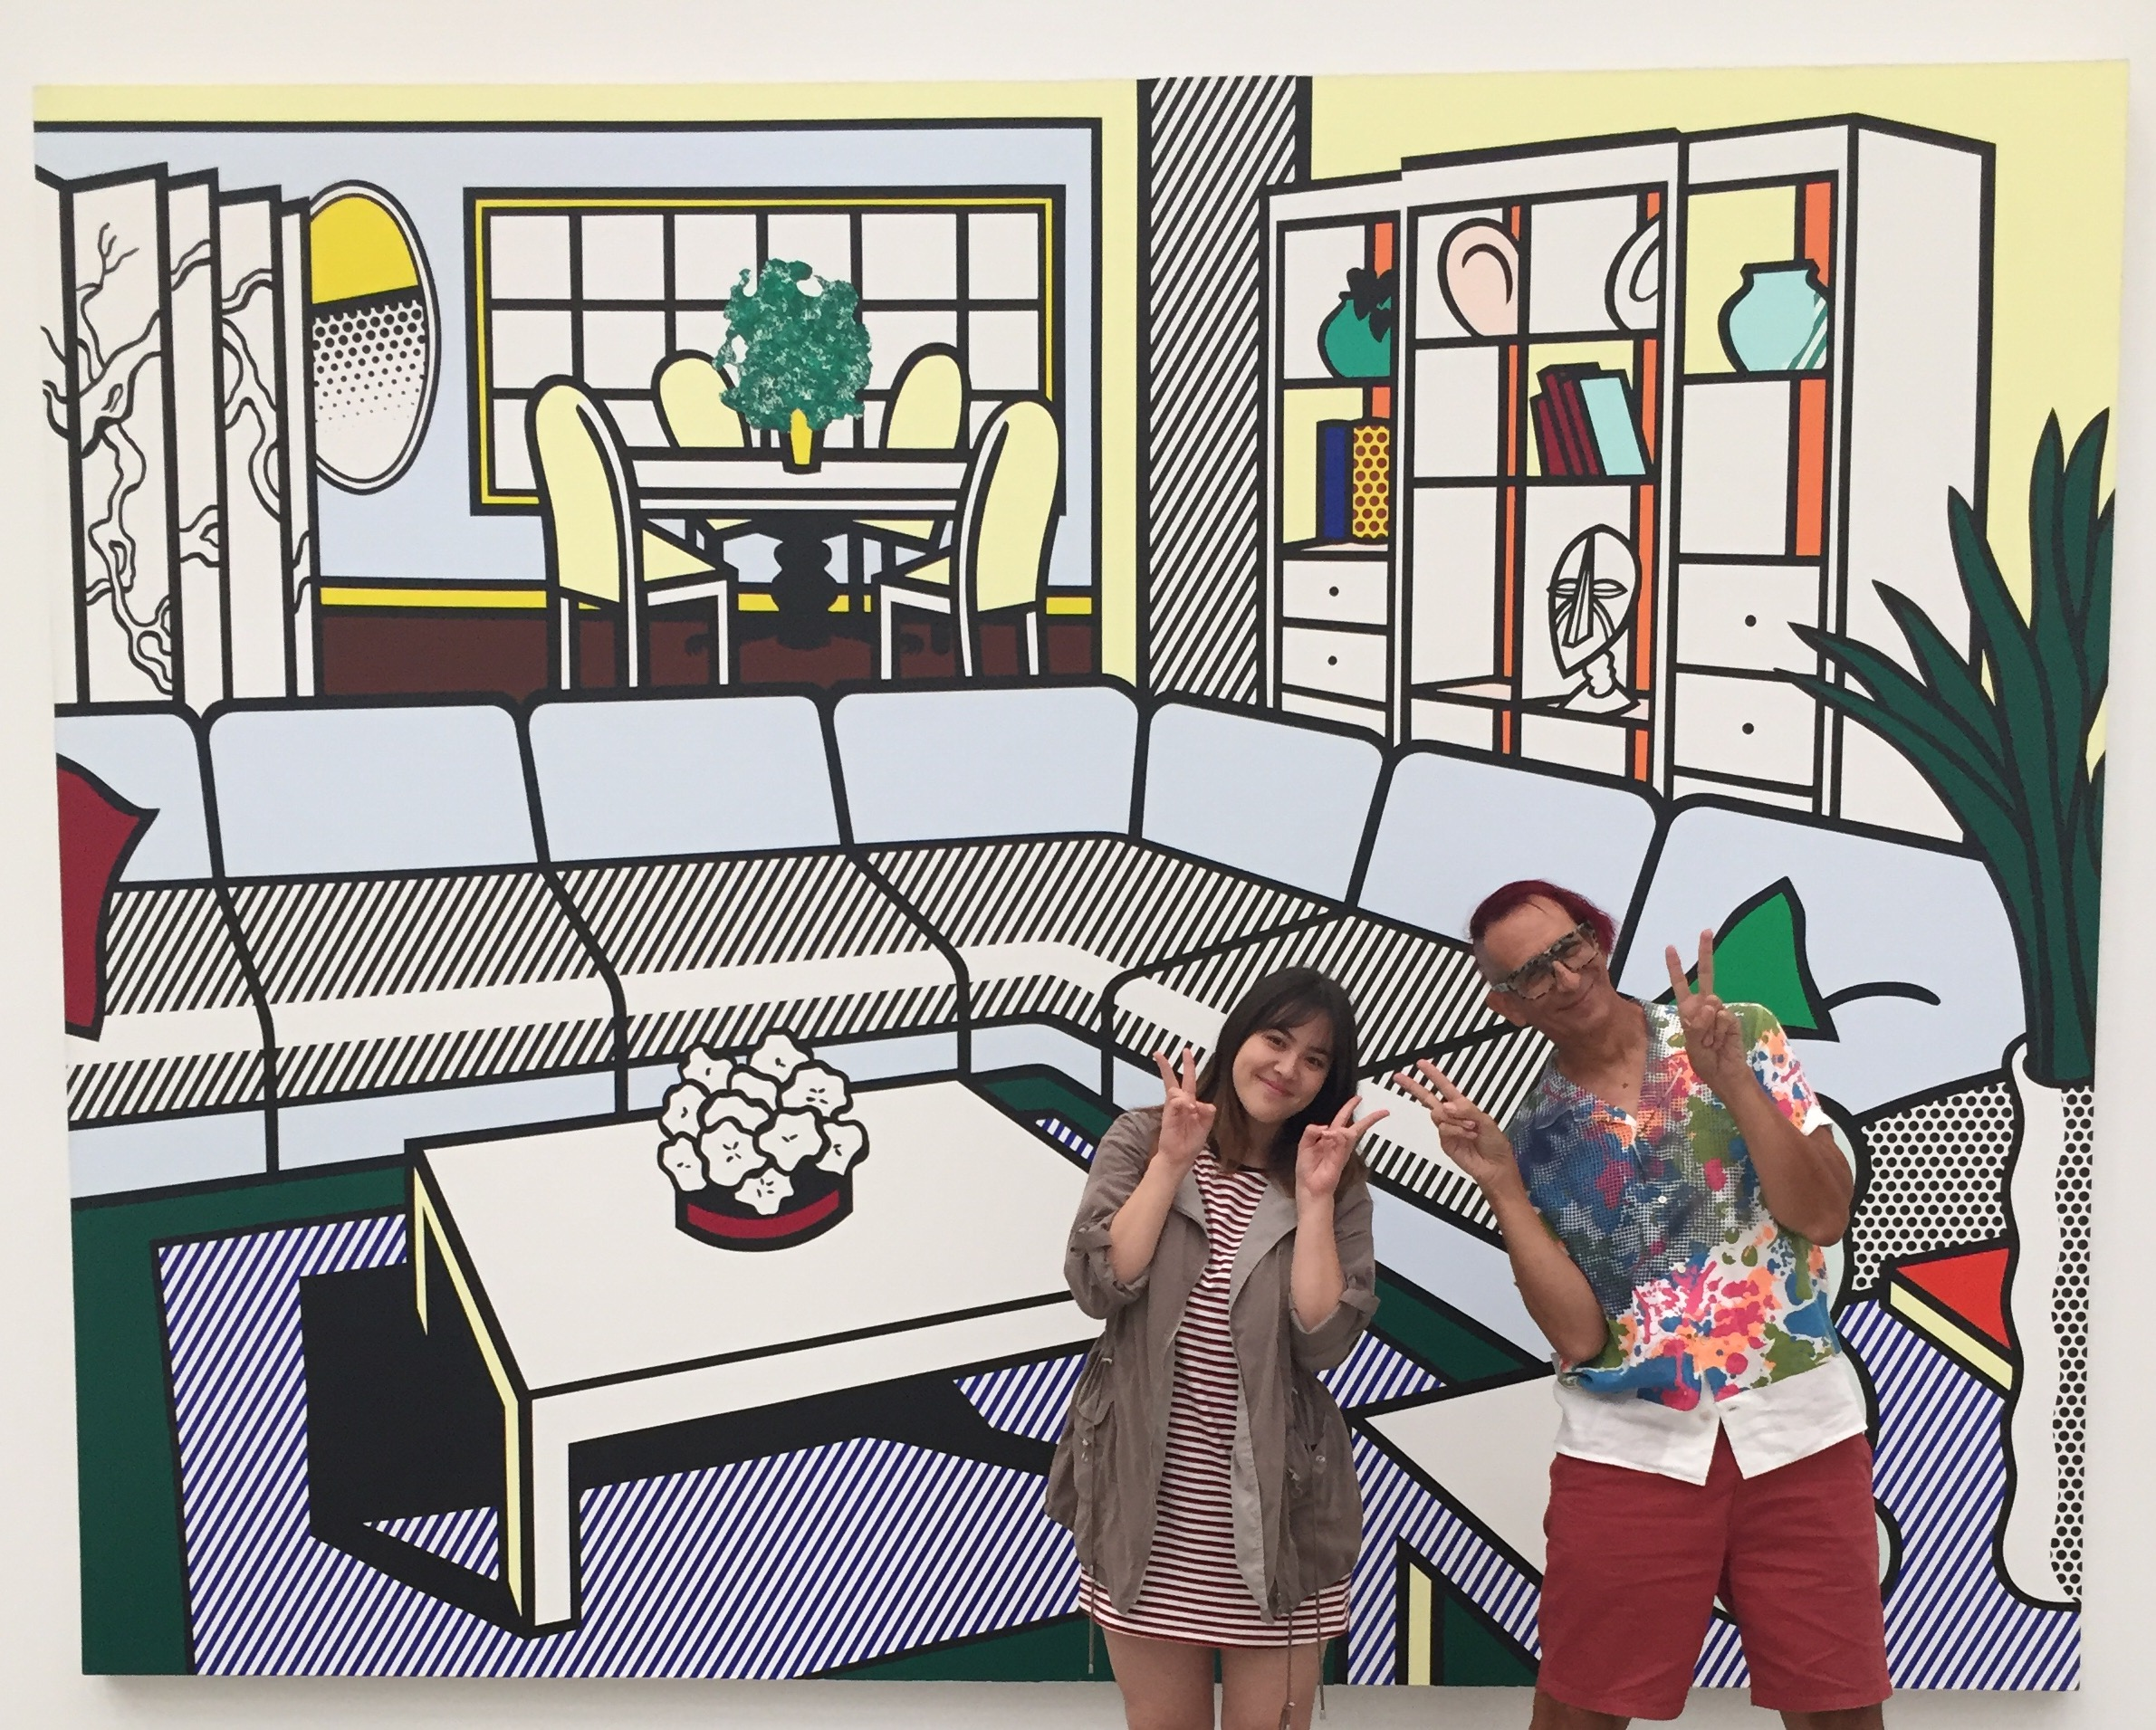 Lisa Bernhauser & Glenn Zucman in front of a large Roy Lichtenstein living room painting at The Broad Museum in Los Angeles